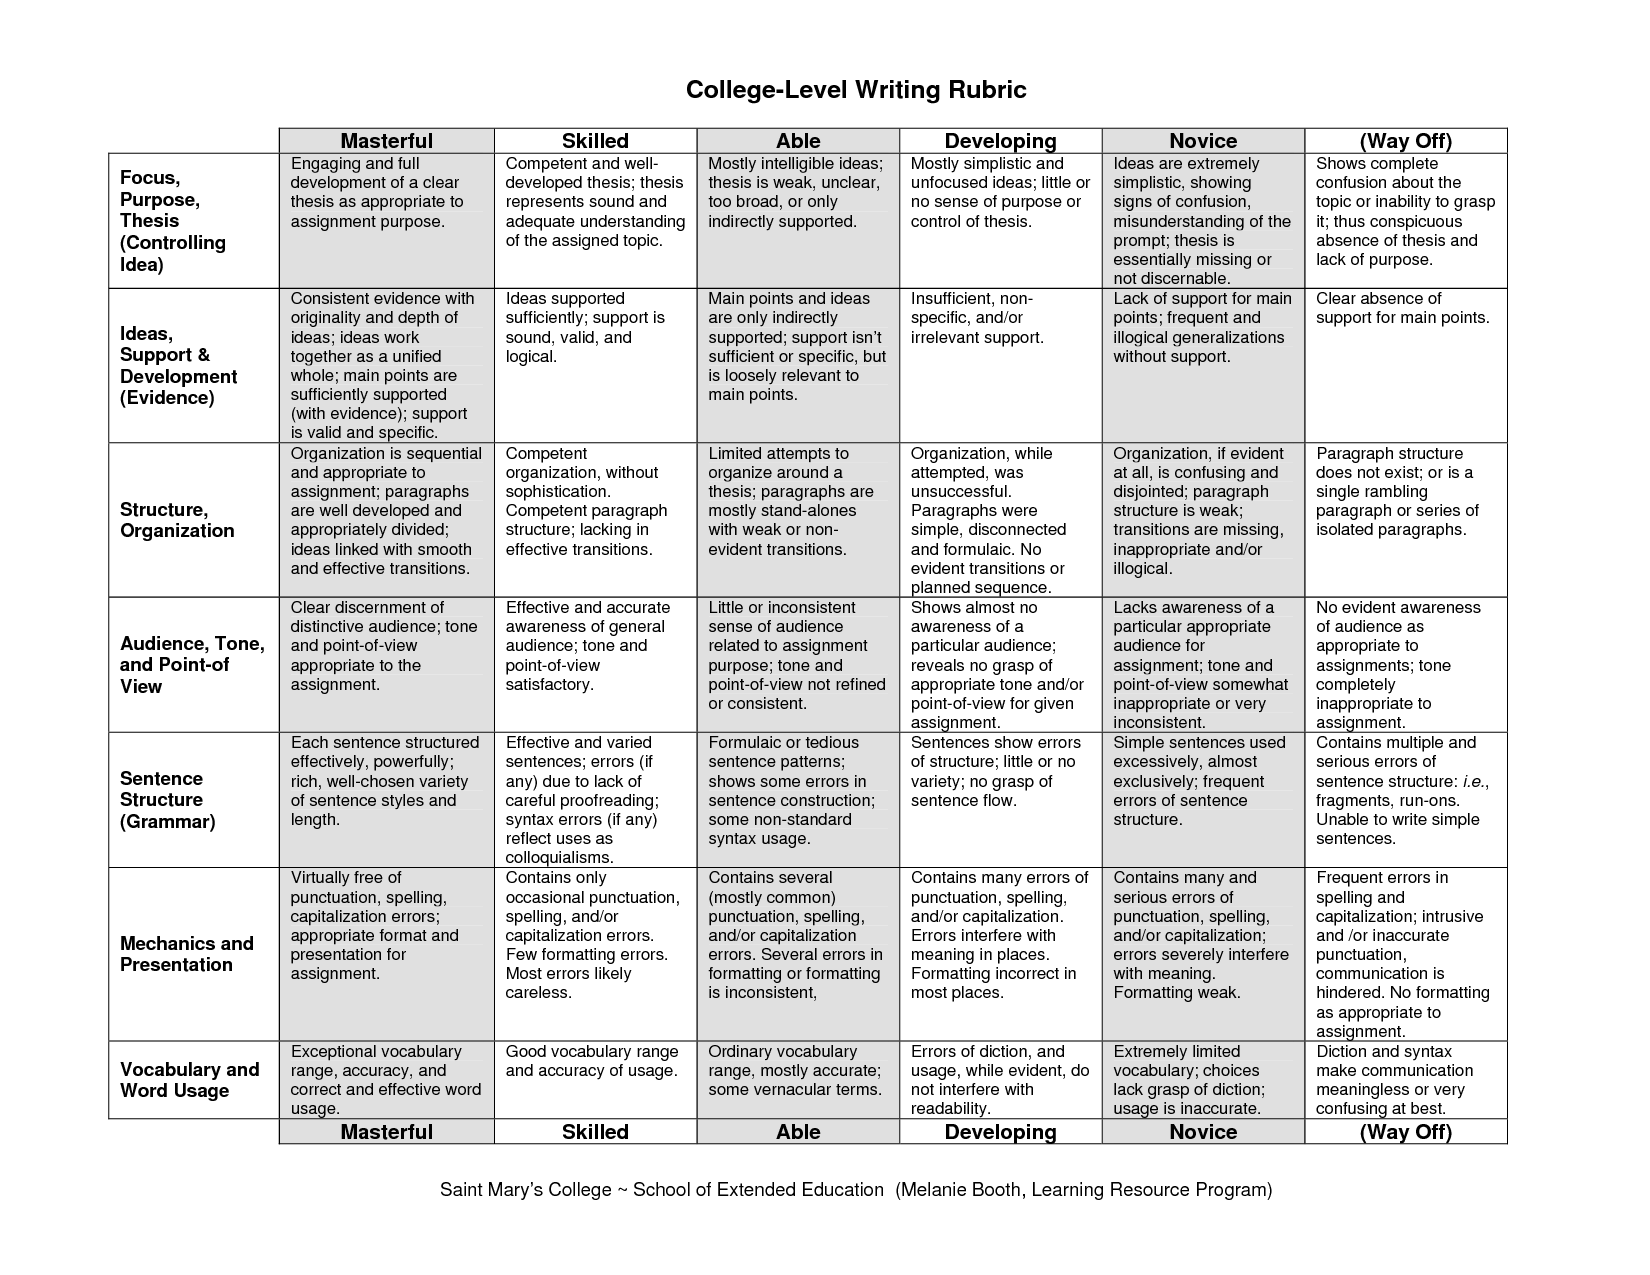 rubric for college level essay